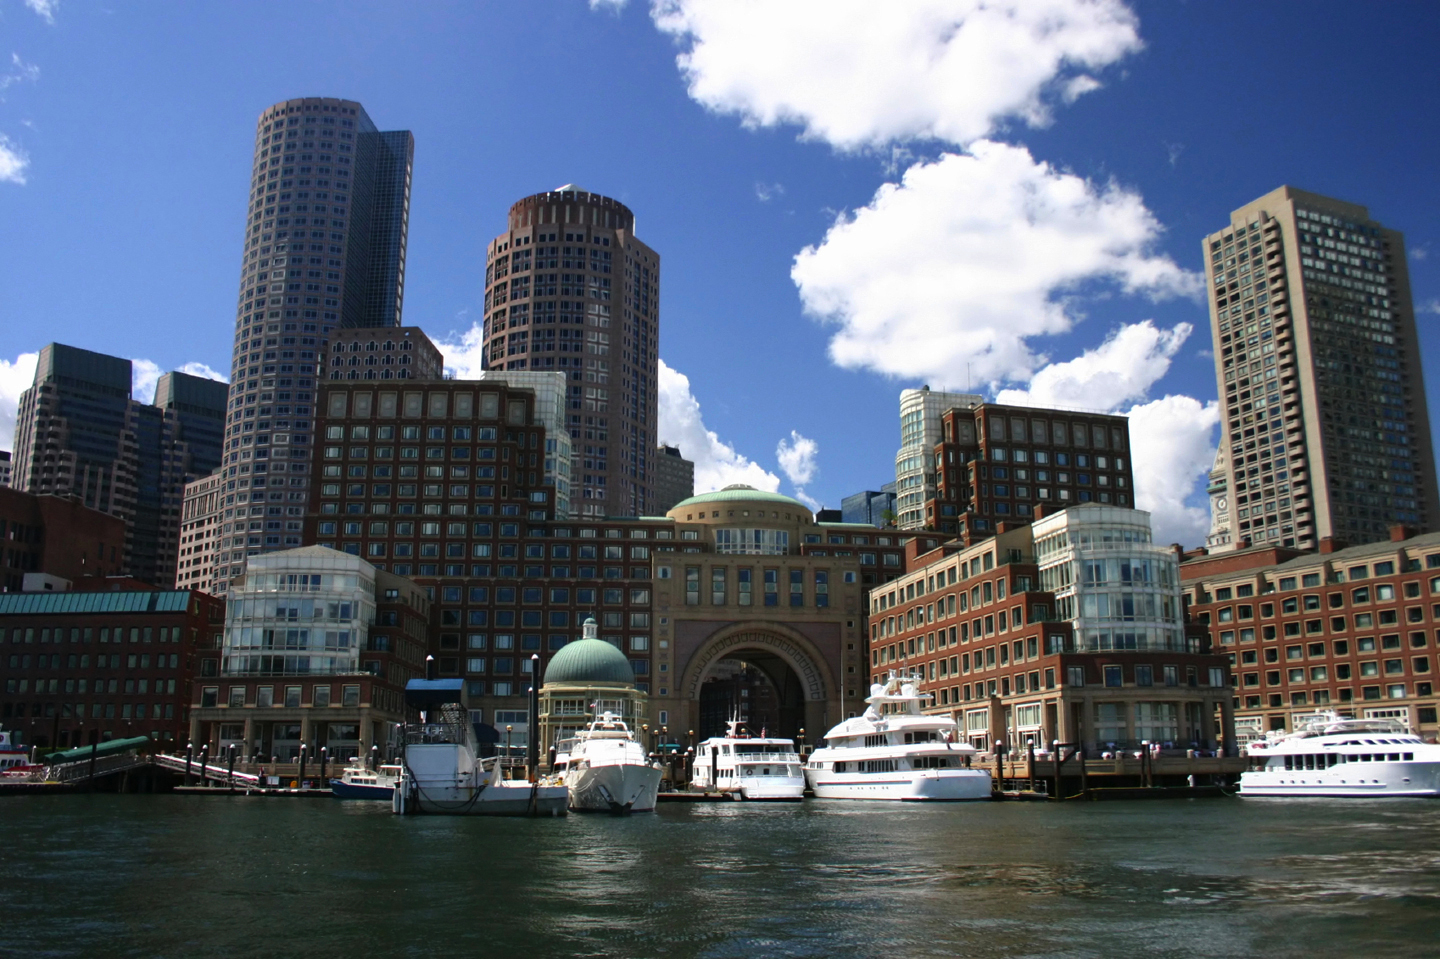 Commercial Real Estate, Boston Commercial Real Estate, Boston Financial District, Boston Rental Property, Boston Office Spaces